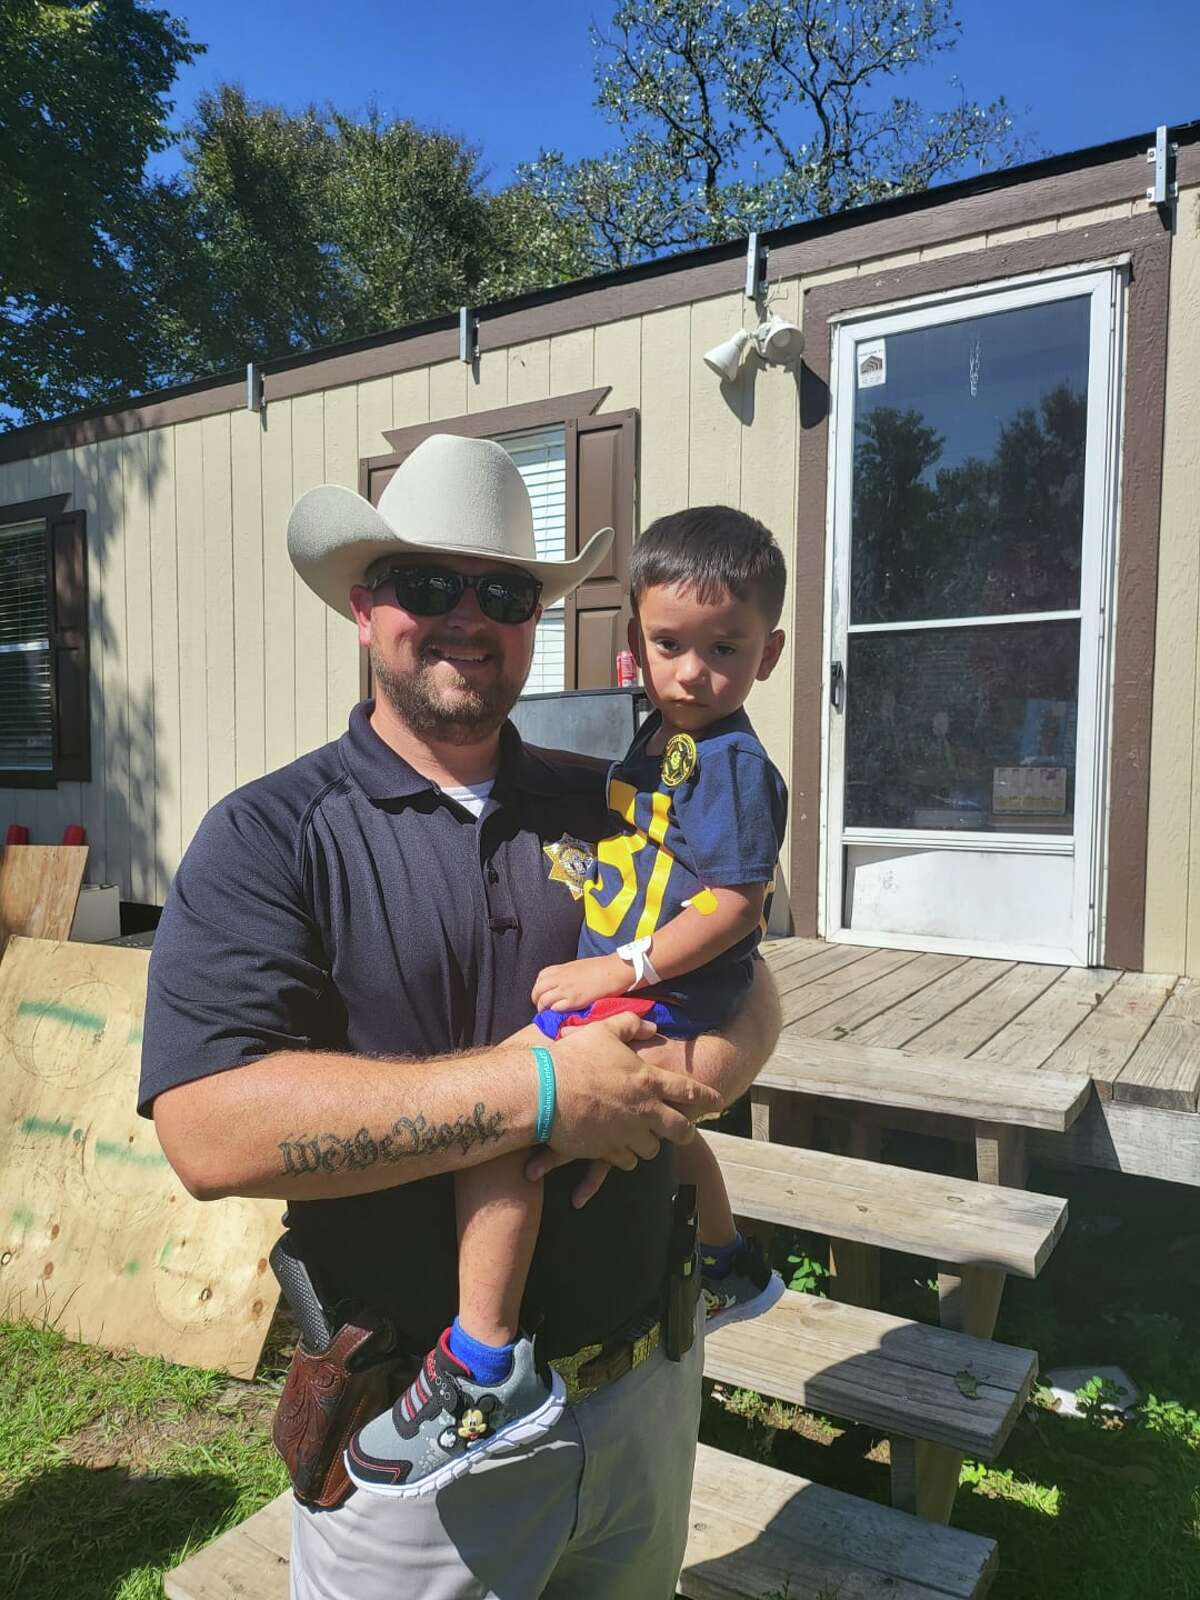 The Grimes County Sheriff's Office honored 3-year-old Christopher Ramirez Monday with the junior deputy badge for surviving three days after he vanished in the woods in Planterville, Texas.